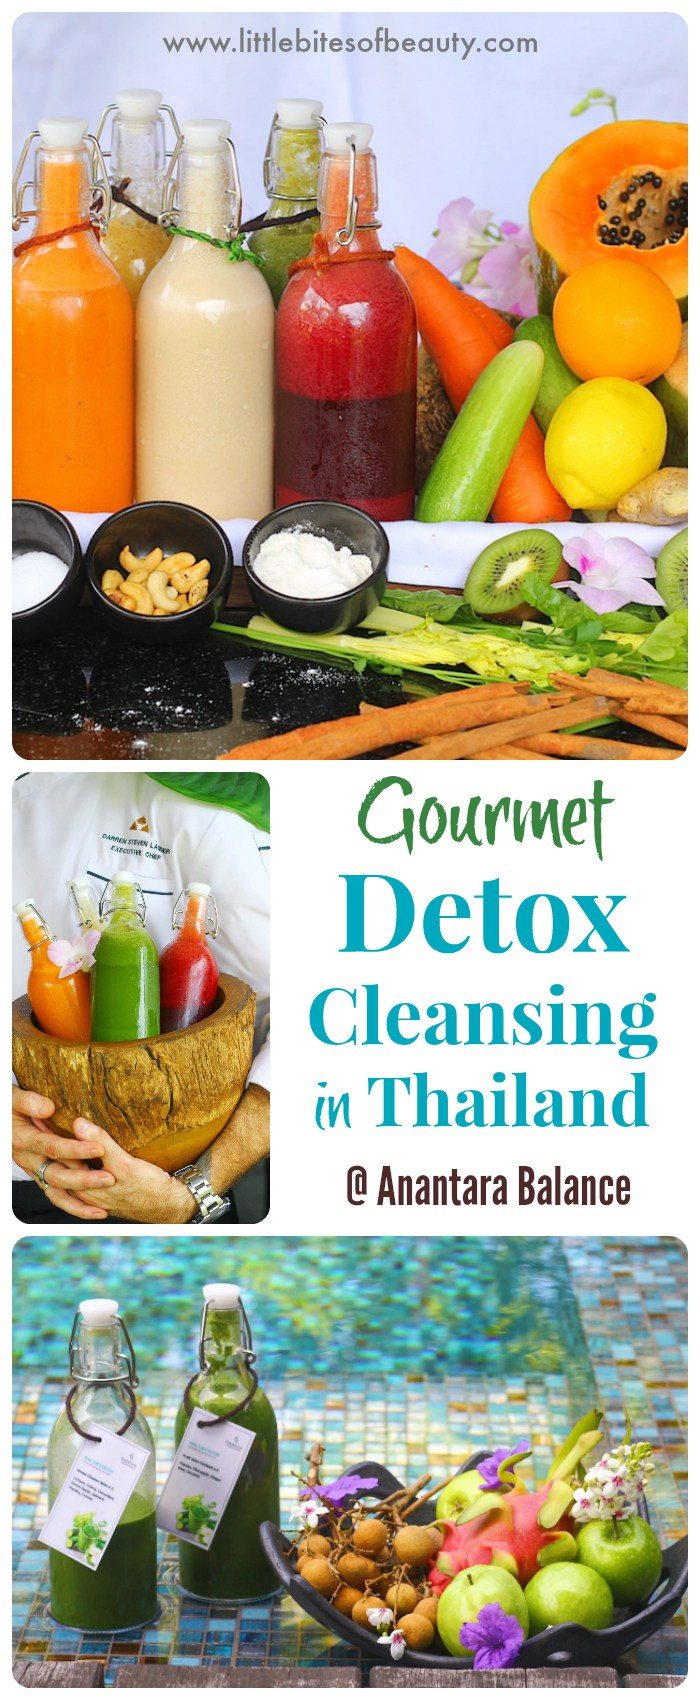 Gourmet-Detox-Cleansing-in-Thailand-with-Anantara-Balance